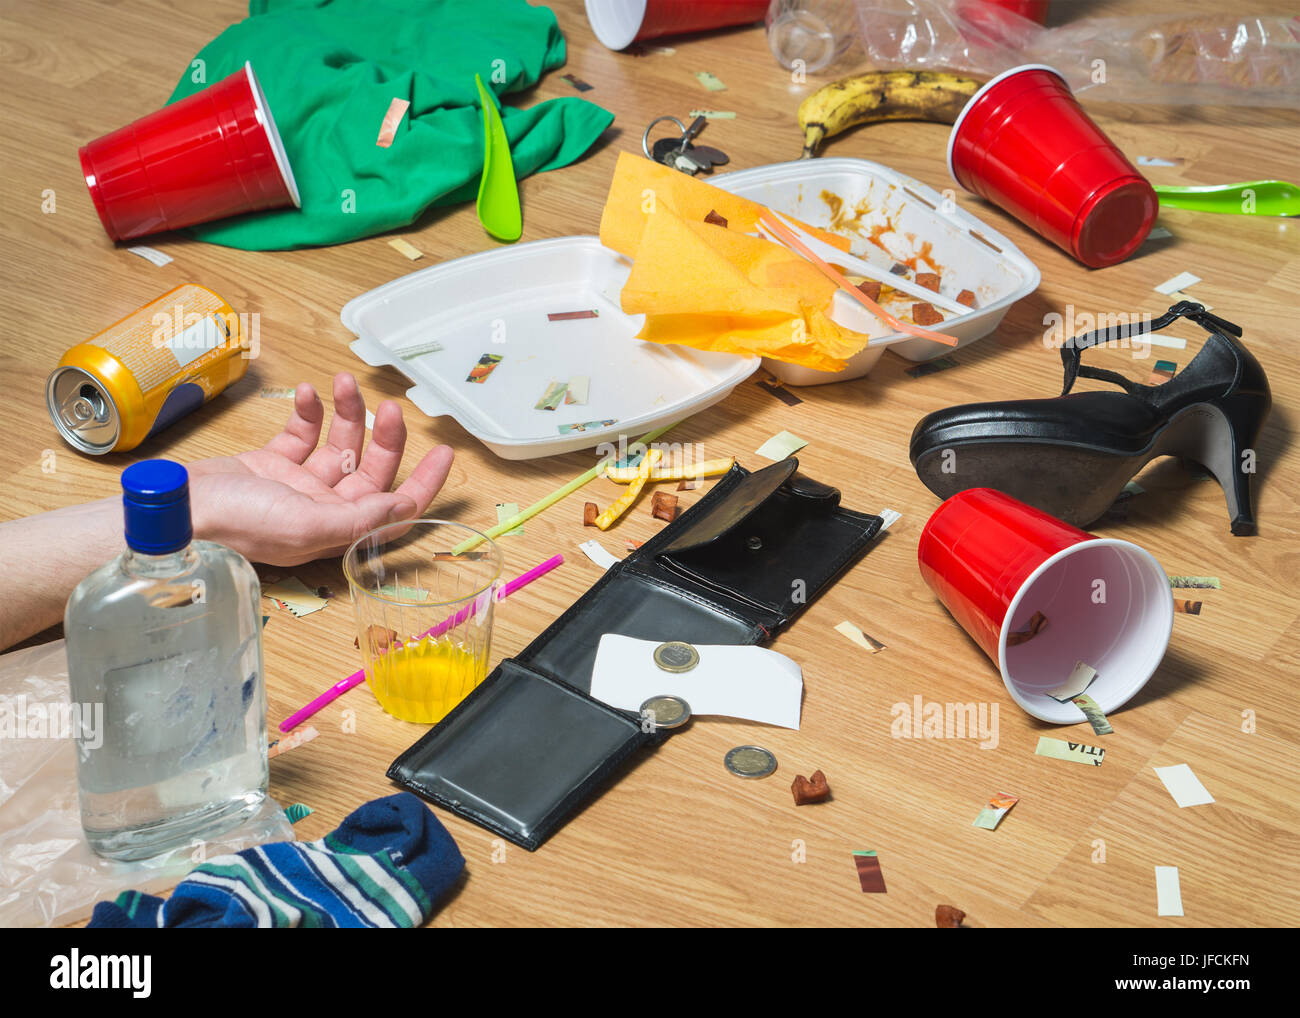 Man passed out on the floor after wild partying, hand visible. Terrible hangover and mess in the apartment. Trash, Stock Photo